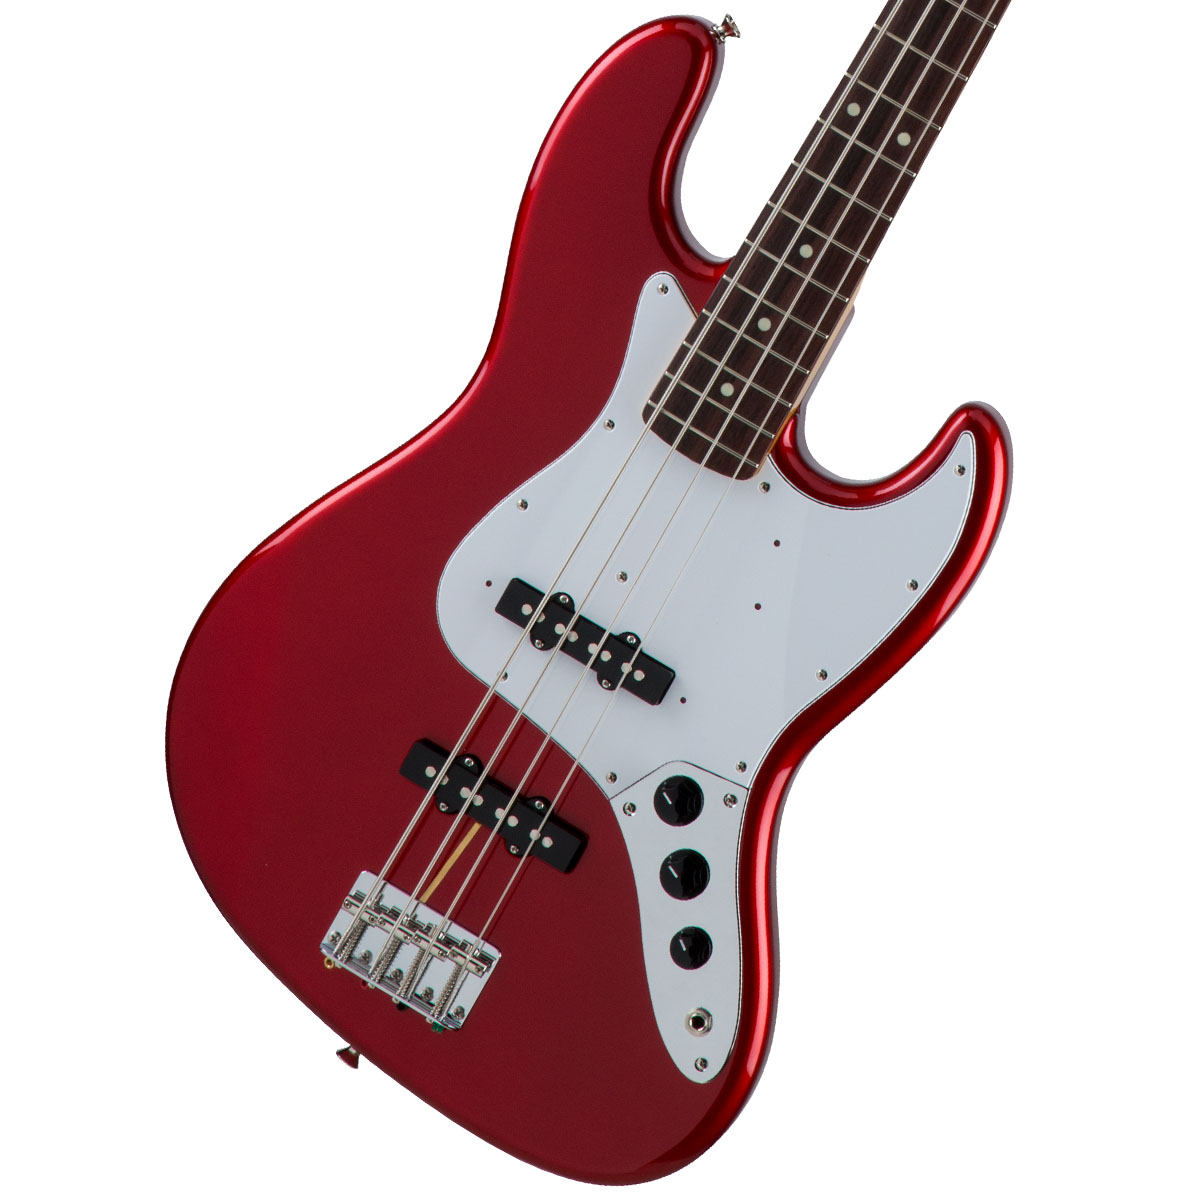 Fender / Made in Japan Traditional 60s Jazz Bass Rosewood Fingerboard Candy Apple Red《FENDERケアキットプレゼント/+671038200》《ベース弦1setプレゼント!/+811131900》